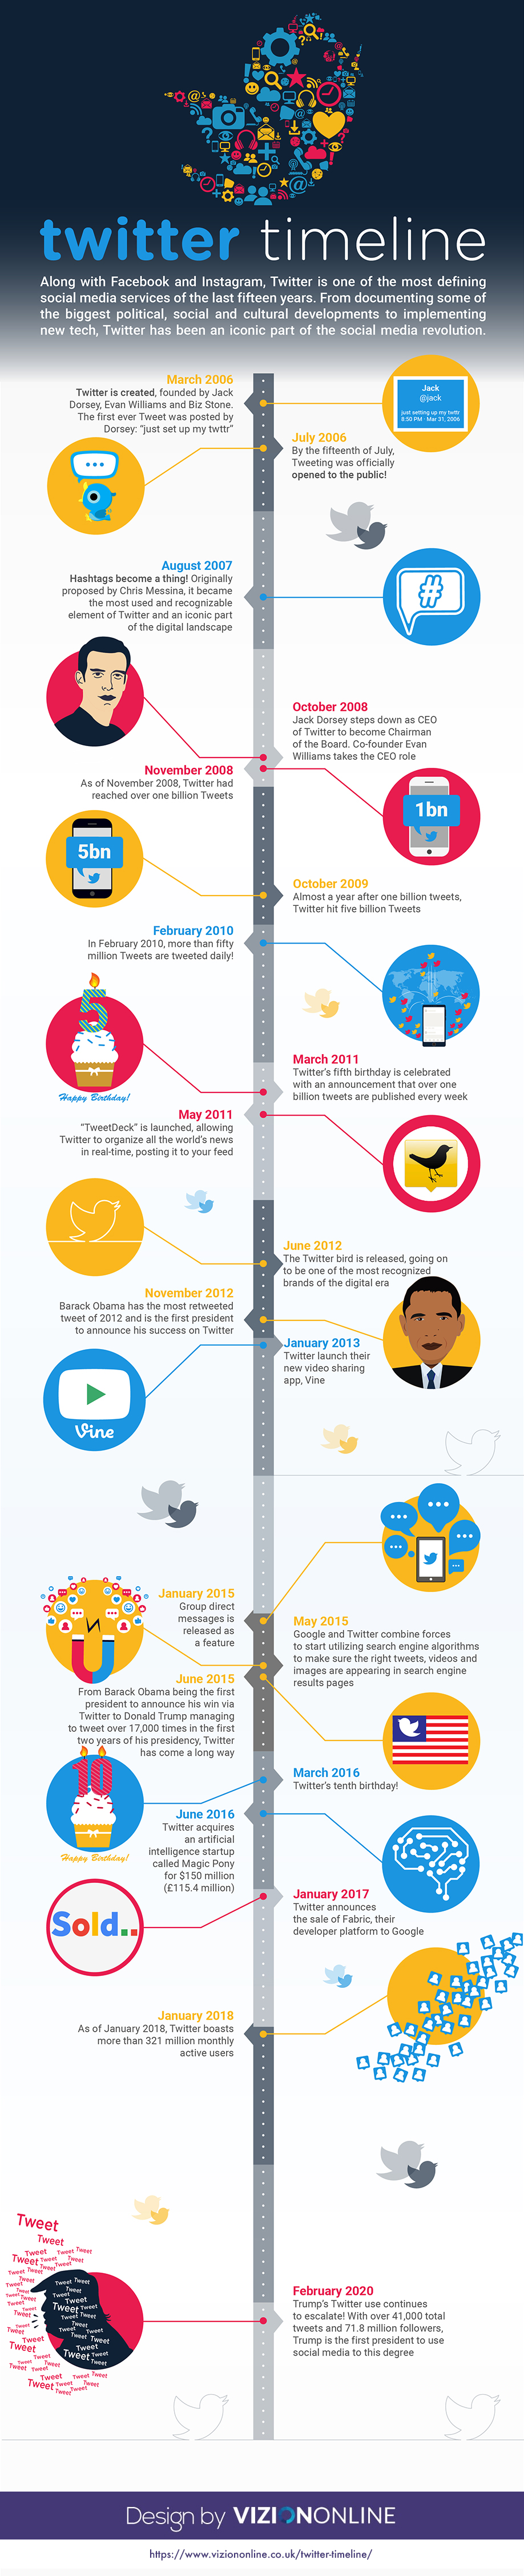 Twitter Timeline: The History of Twitter